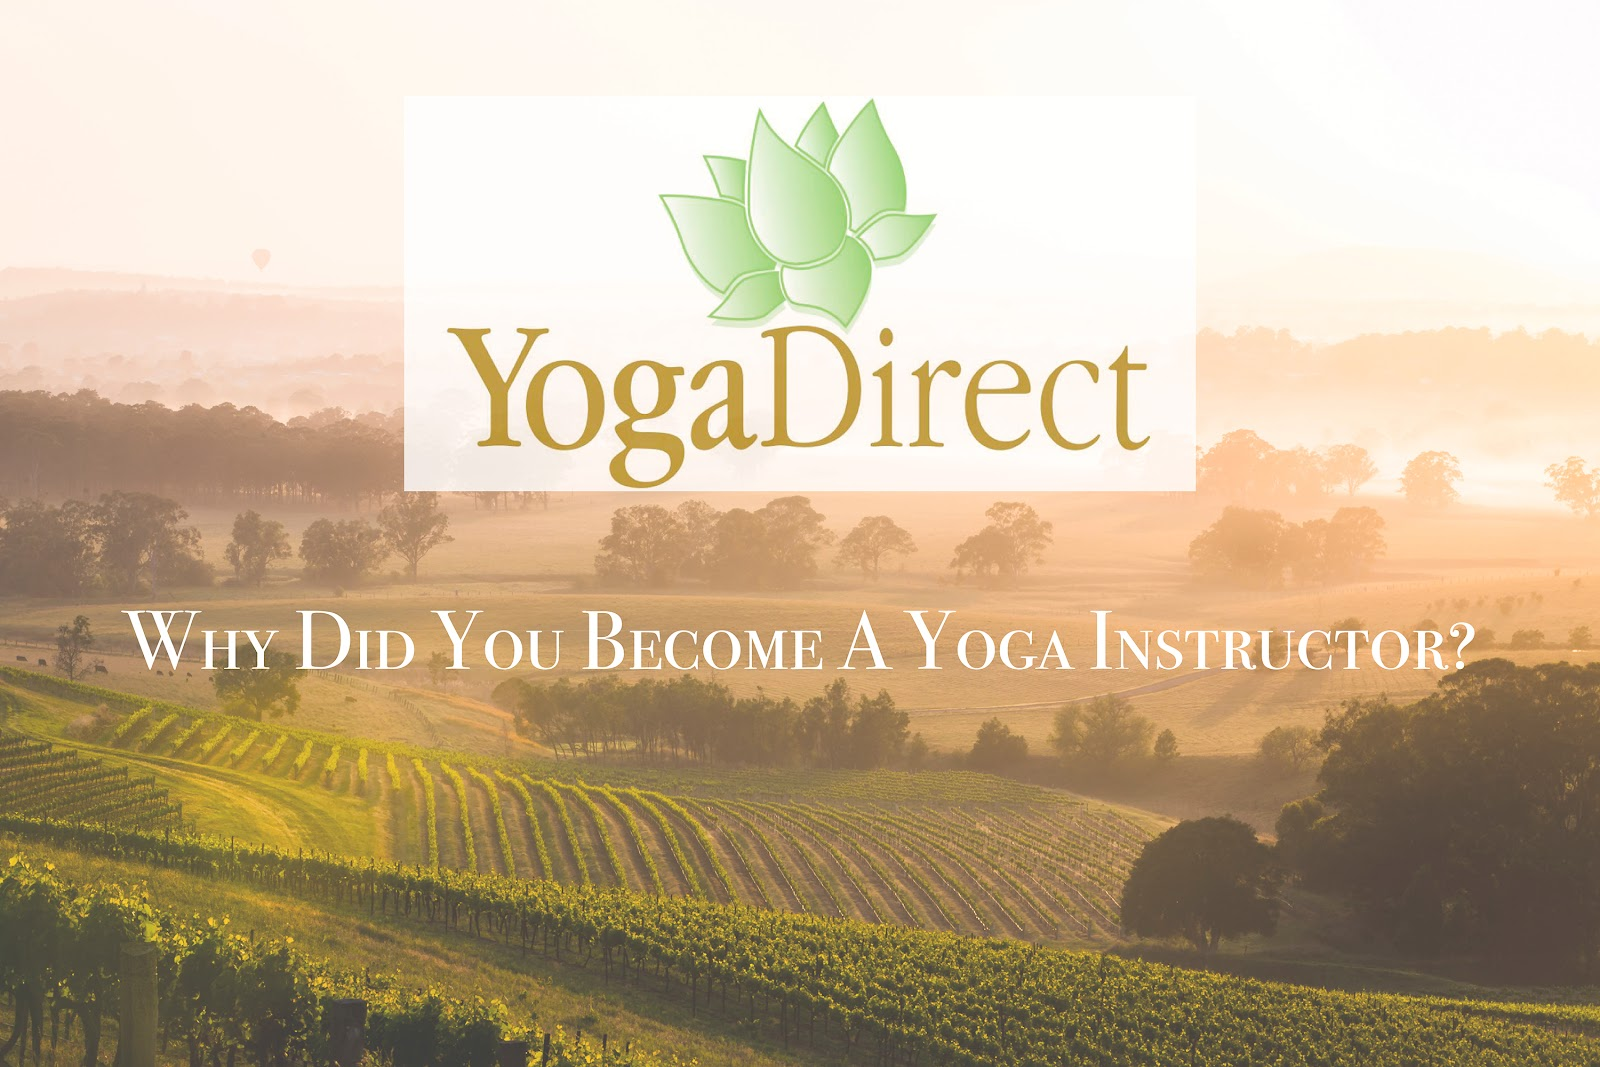 Yoga Direct Graphic 2.jpg